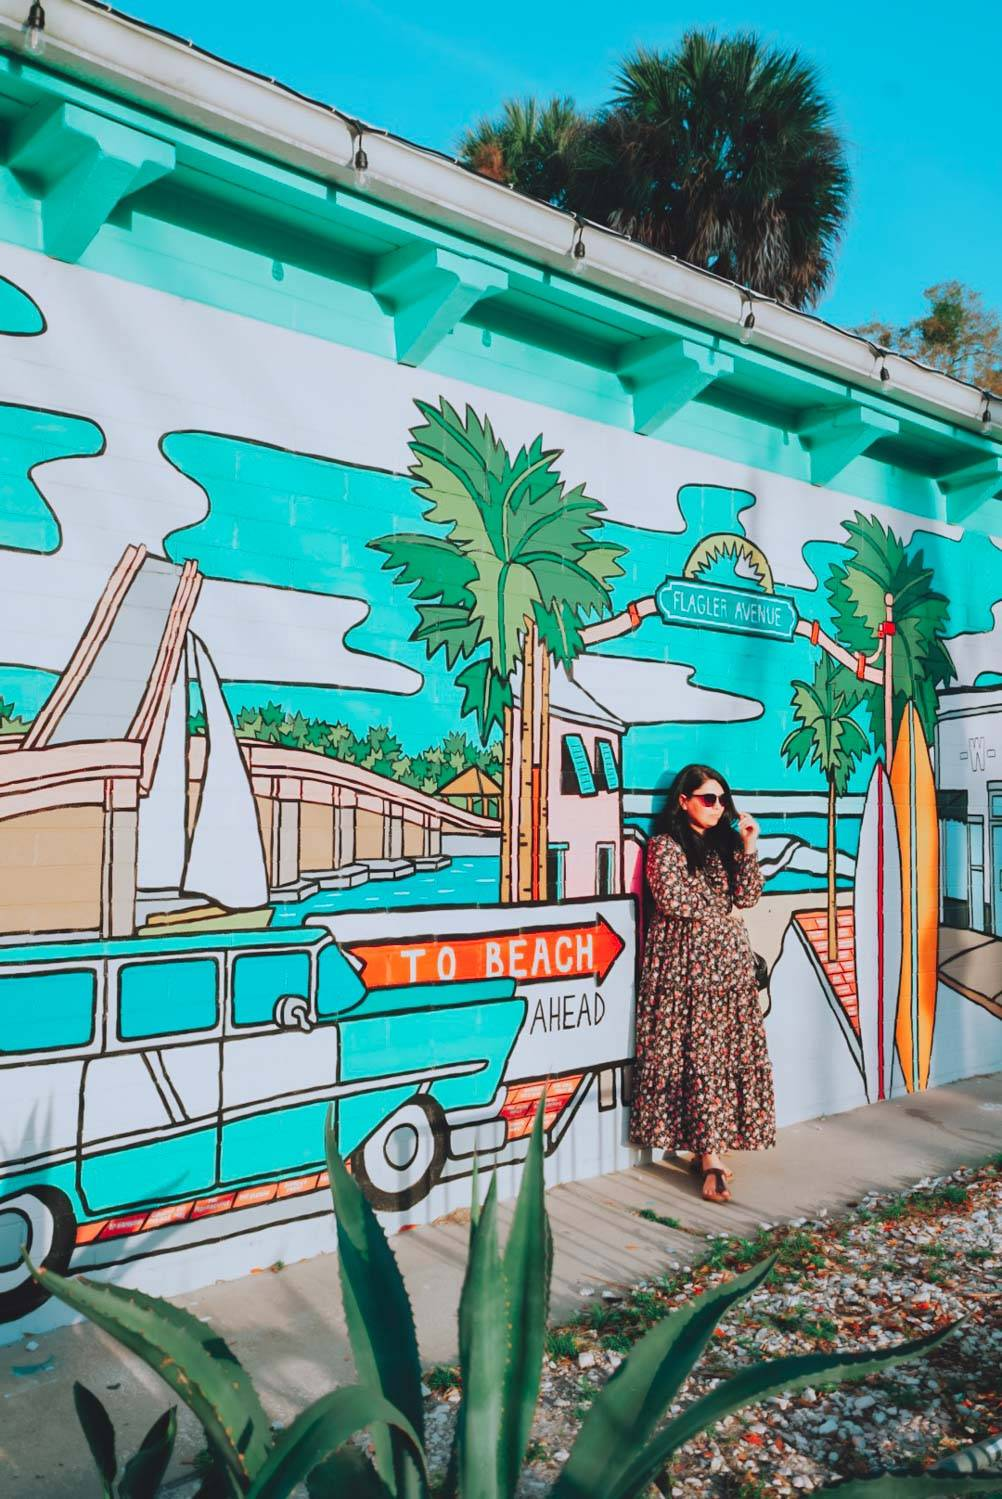 This guide to New Smyrna beach has everything you need to know about this charming little beach town in Florida. It includes things to do in New Smyrna beach, places to stay, and where to eat.